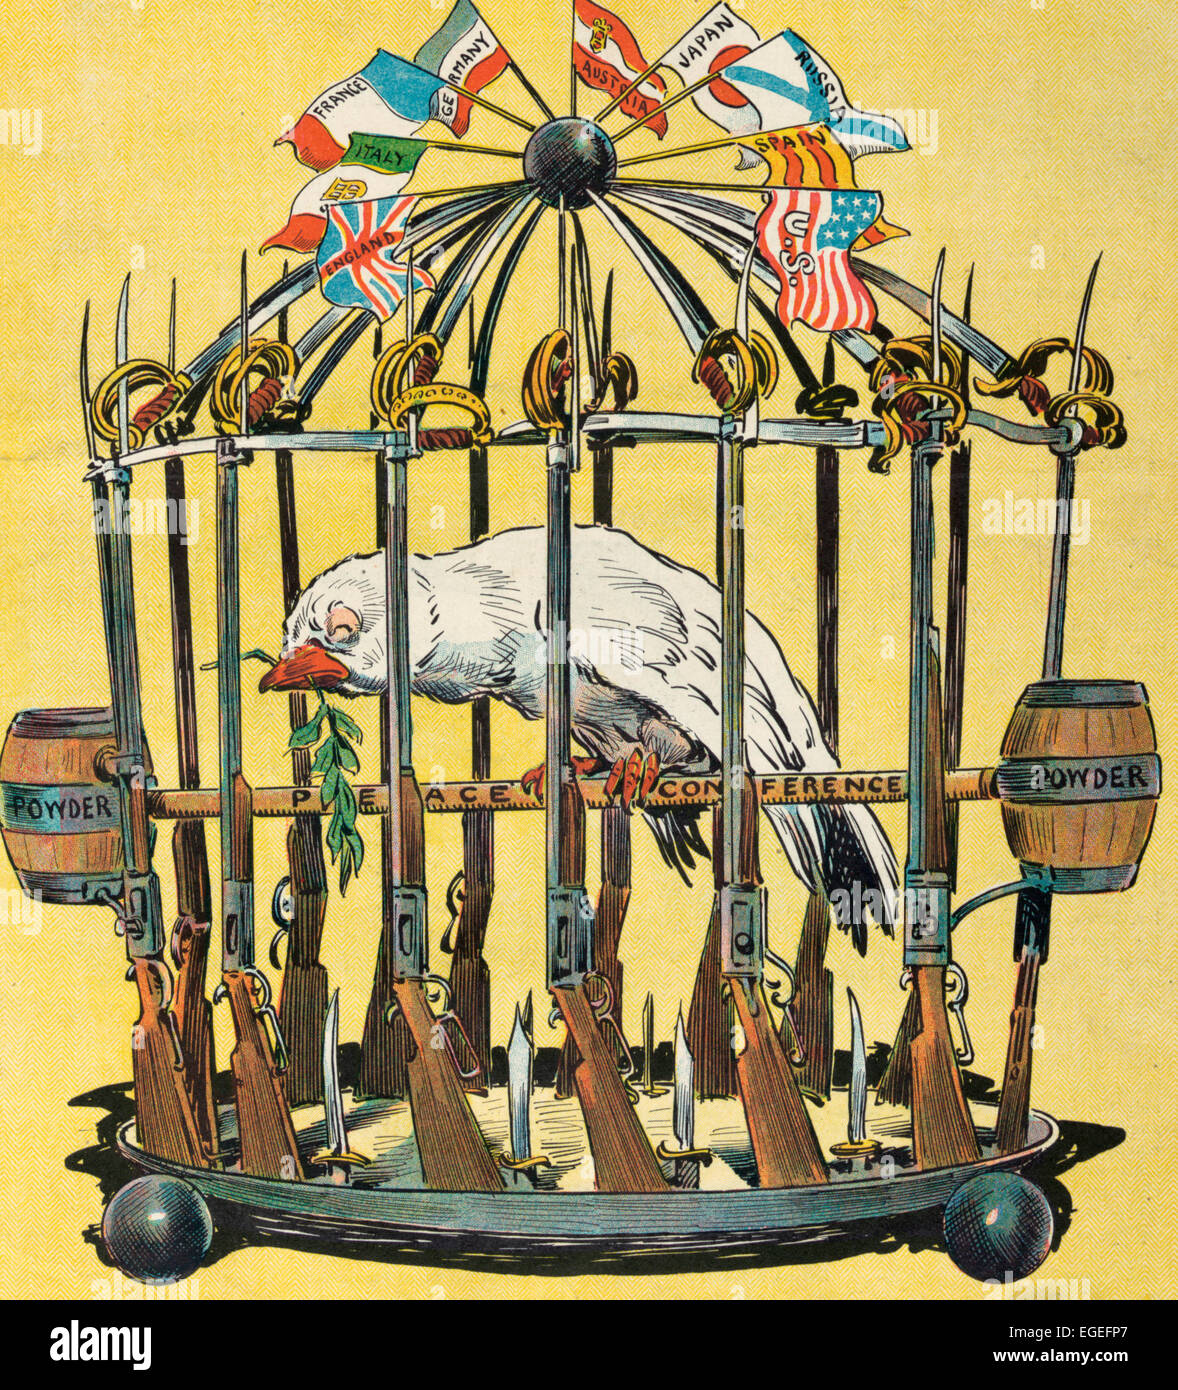 Caged - Illustration shows a sickly looking dove in a birdcage fashioned from rifles and swords, with 'Powder' - Stock Image